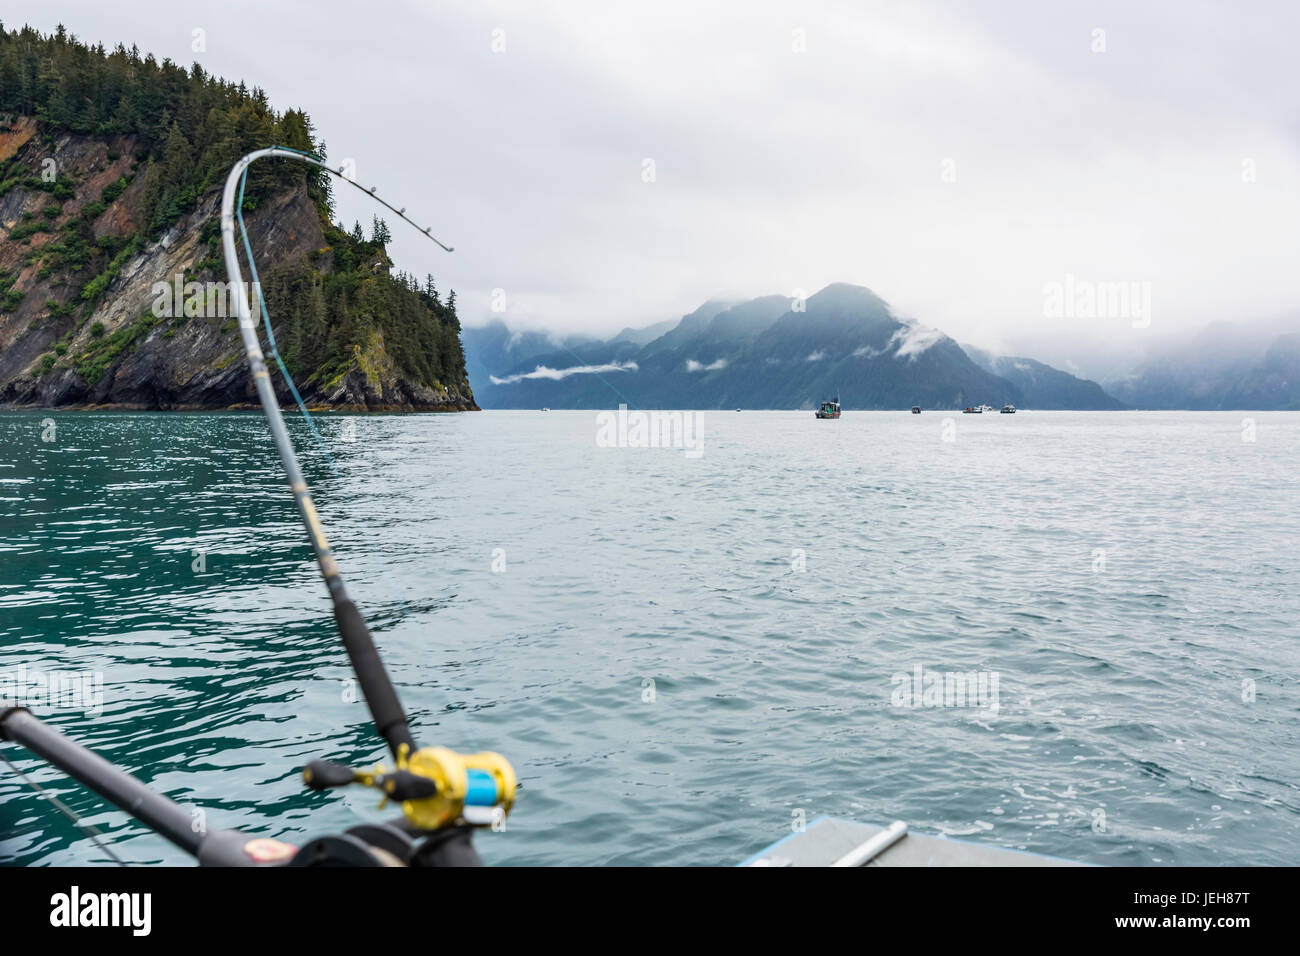 A fishing rod bends over as a halibut hits the line, foggy Kenai Mountains in the background, Resurrection Bay, - Stock Image